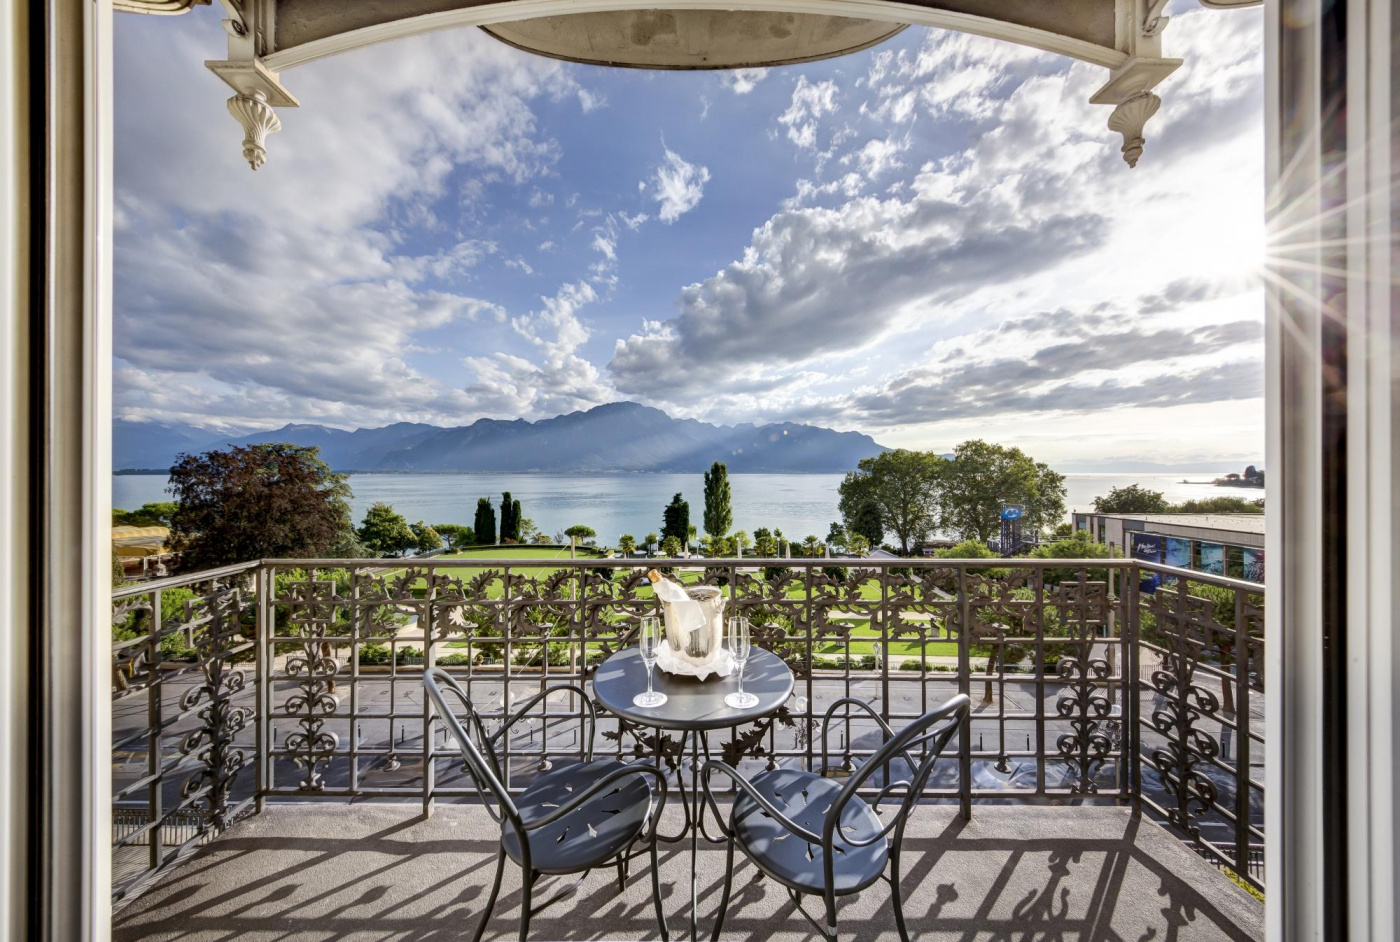 Terrace with lake view in a resort for weddings in Lake Geneva